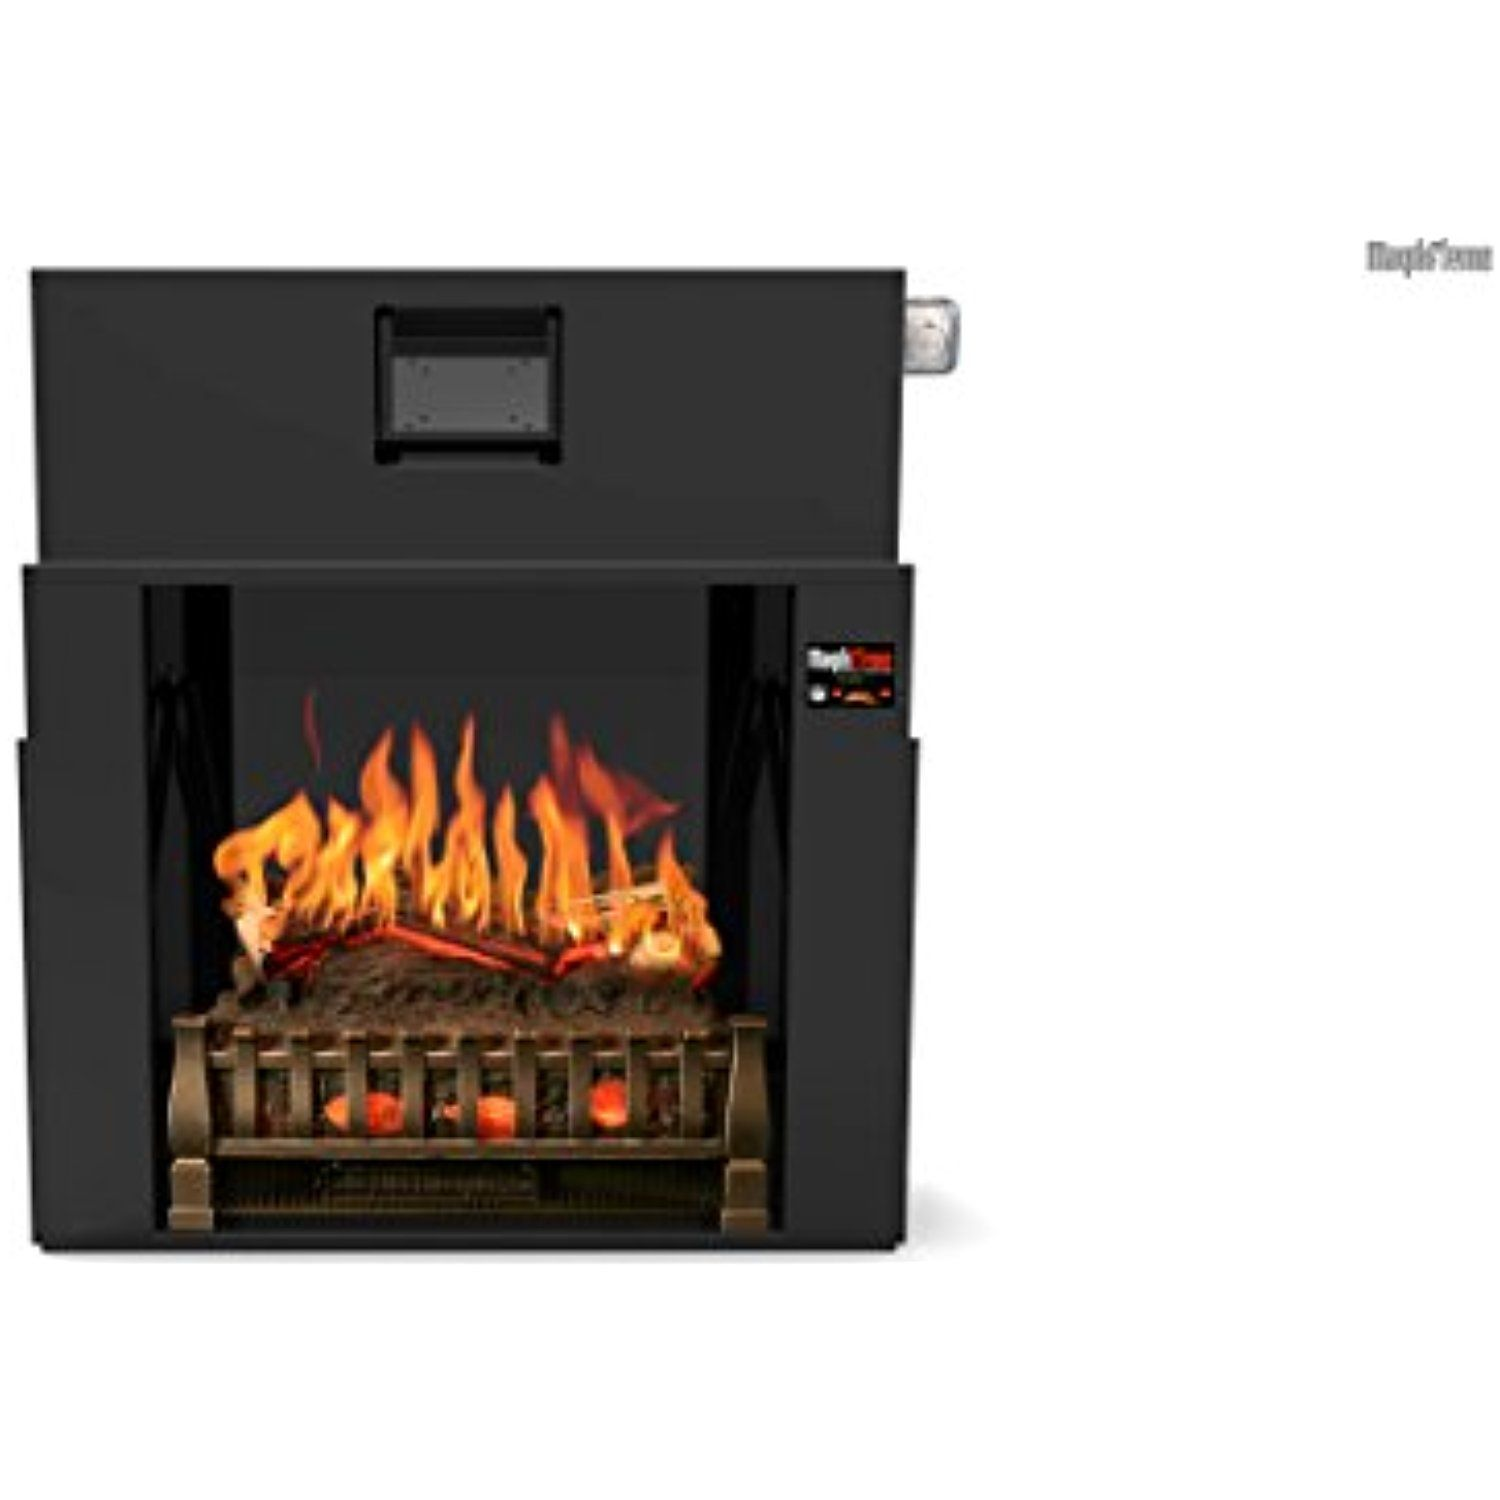 MOST REALISTIC Electric Fireplace INSERT on Amazon 21 Flames